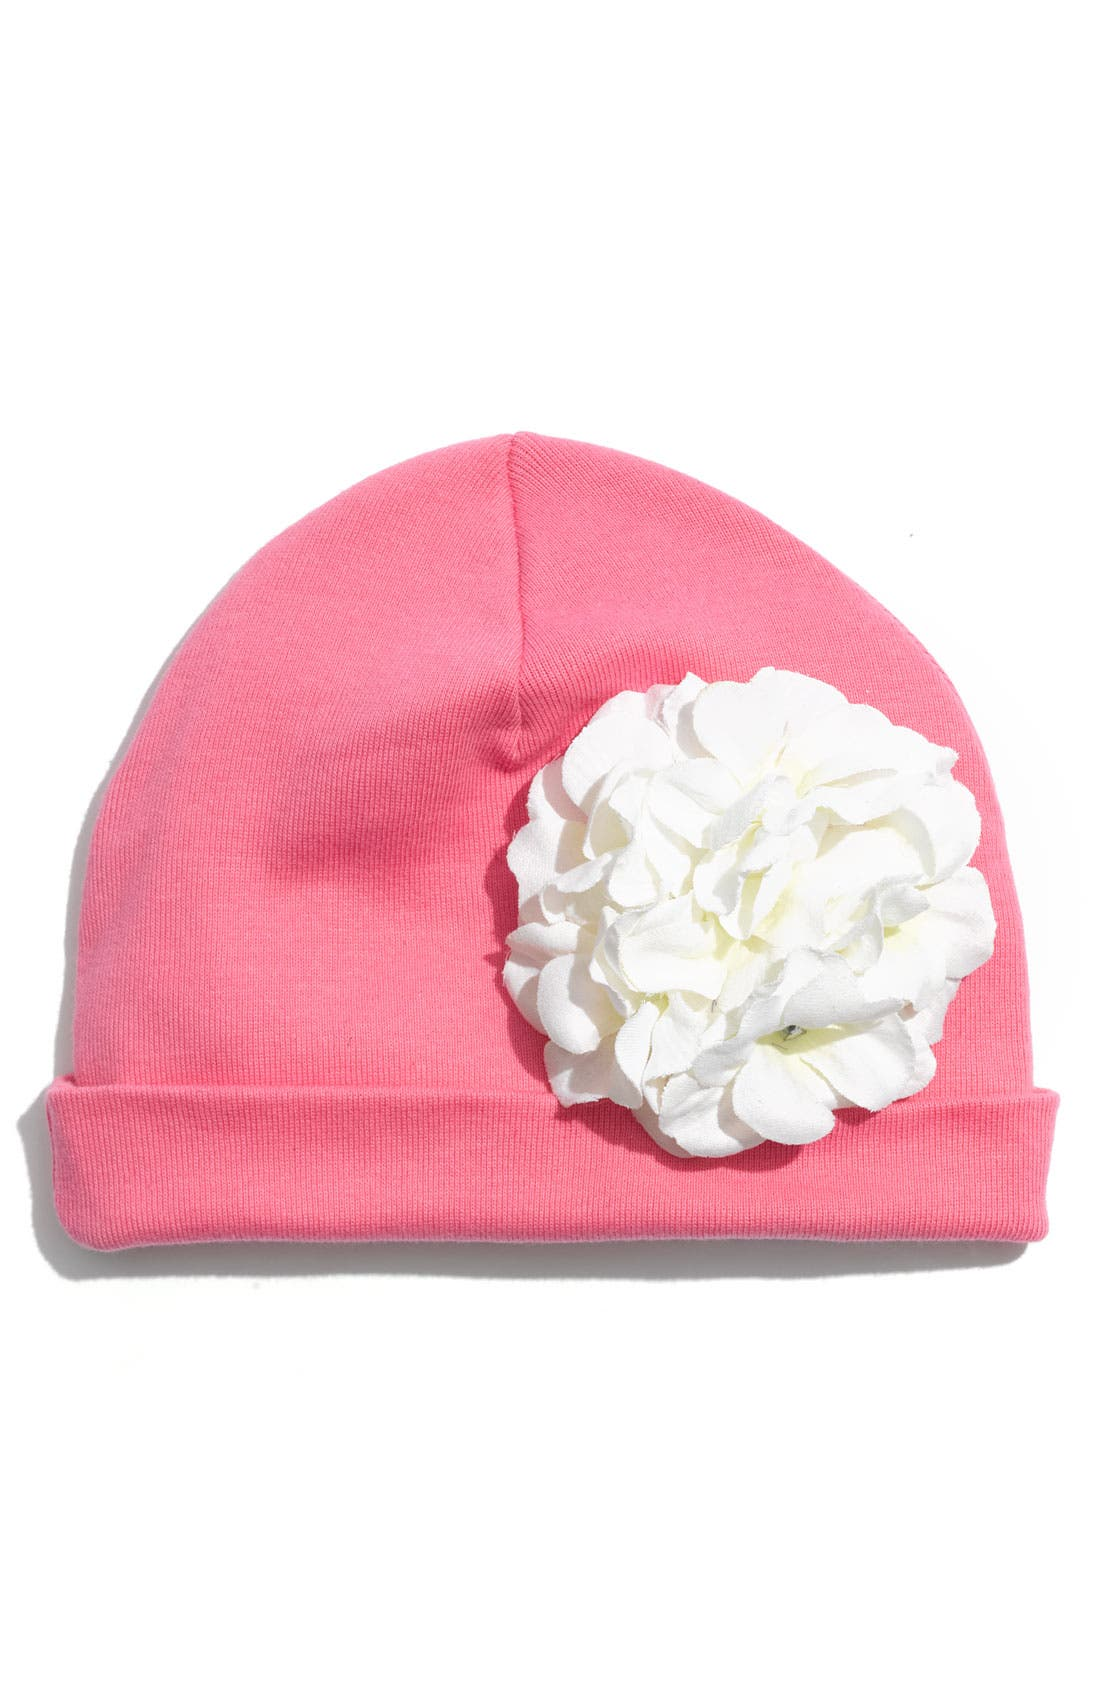 Main Image - Jamie Rae Hats Peony Hat (Infant)